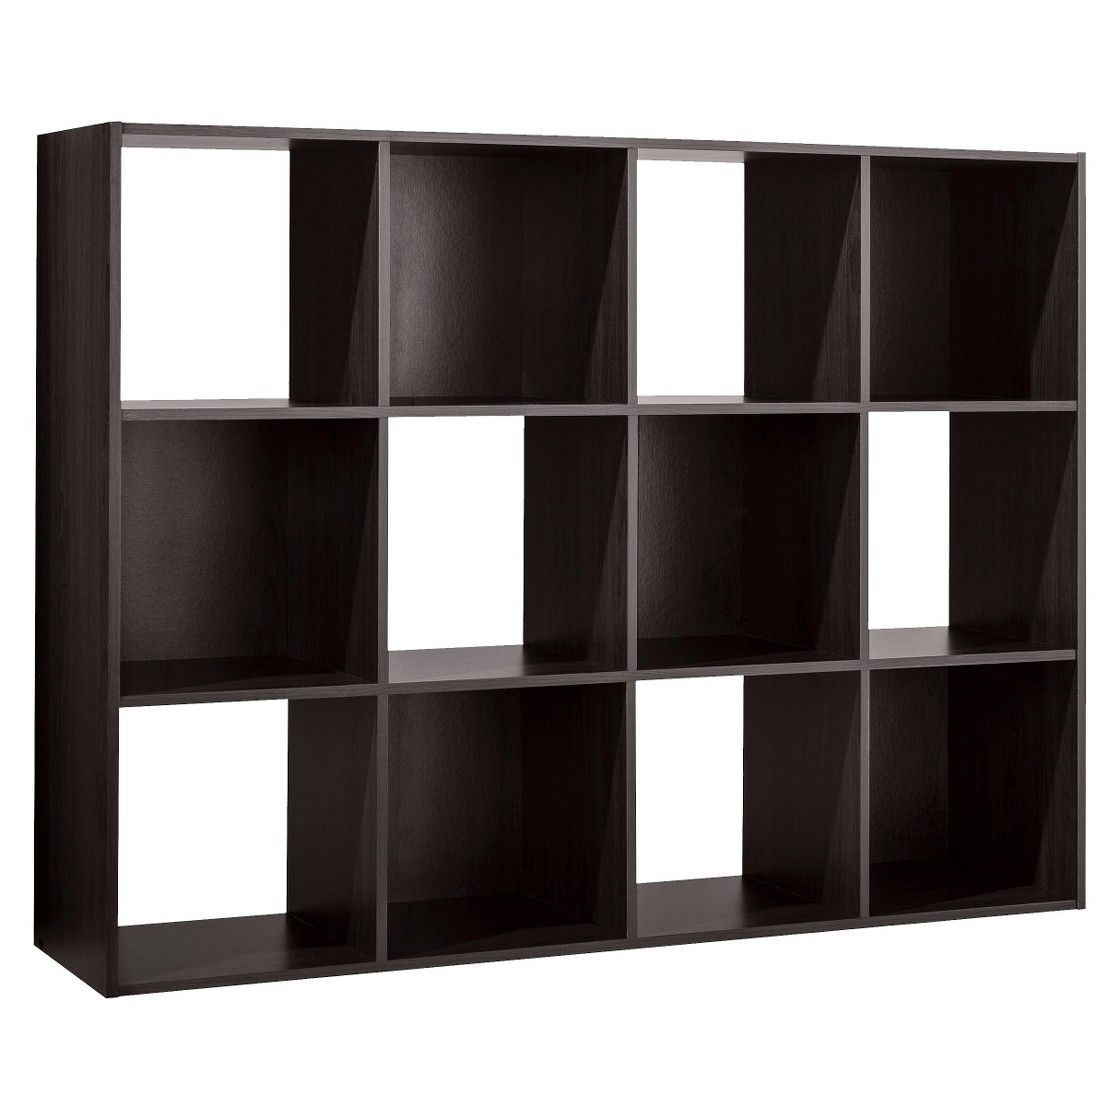 Room Essentials 12 Cube Organizer Espresso Cube Organizer Cube Storage Room Essentials